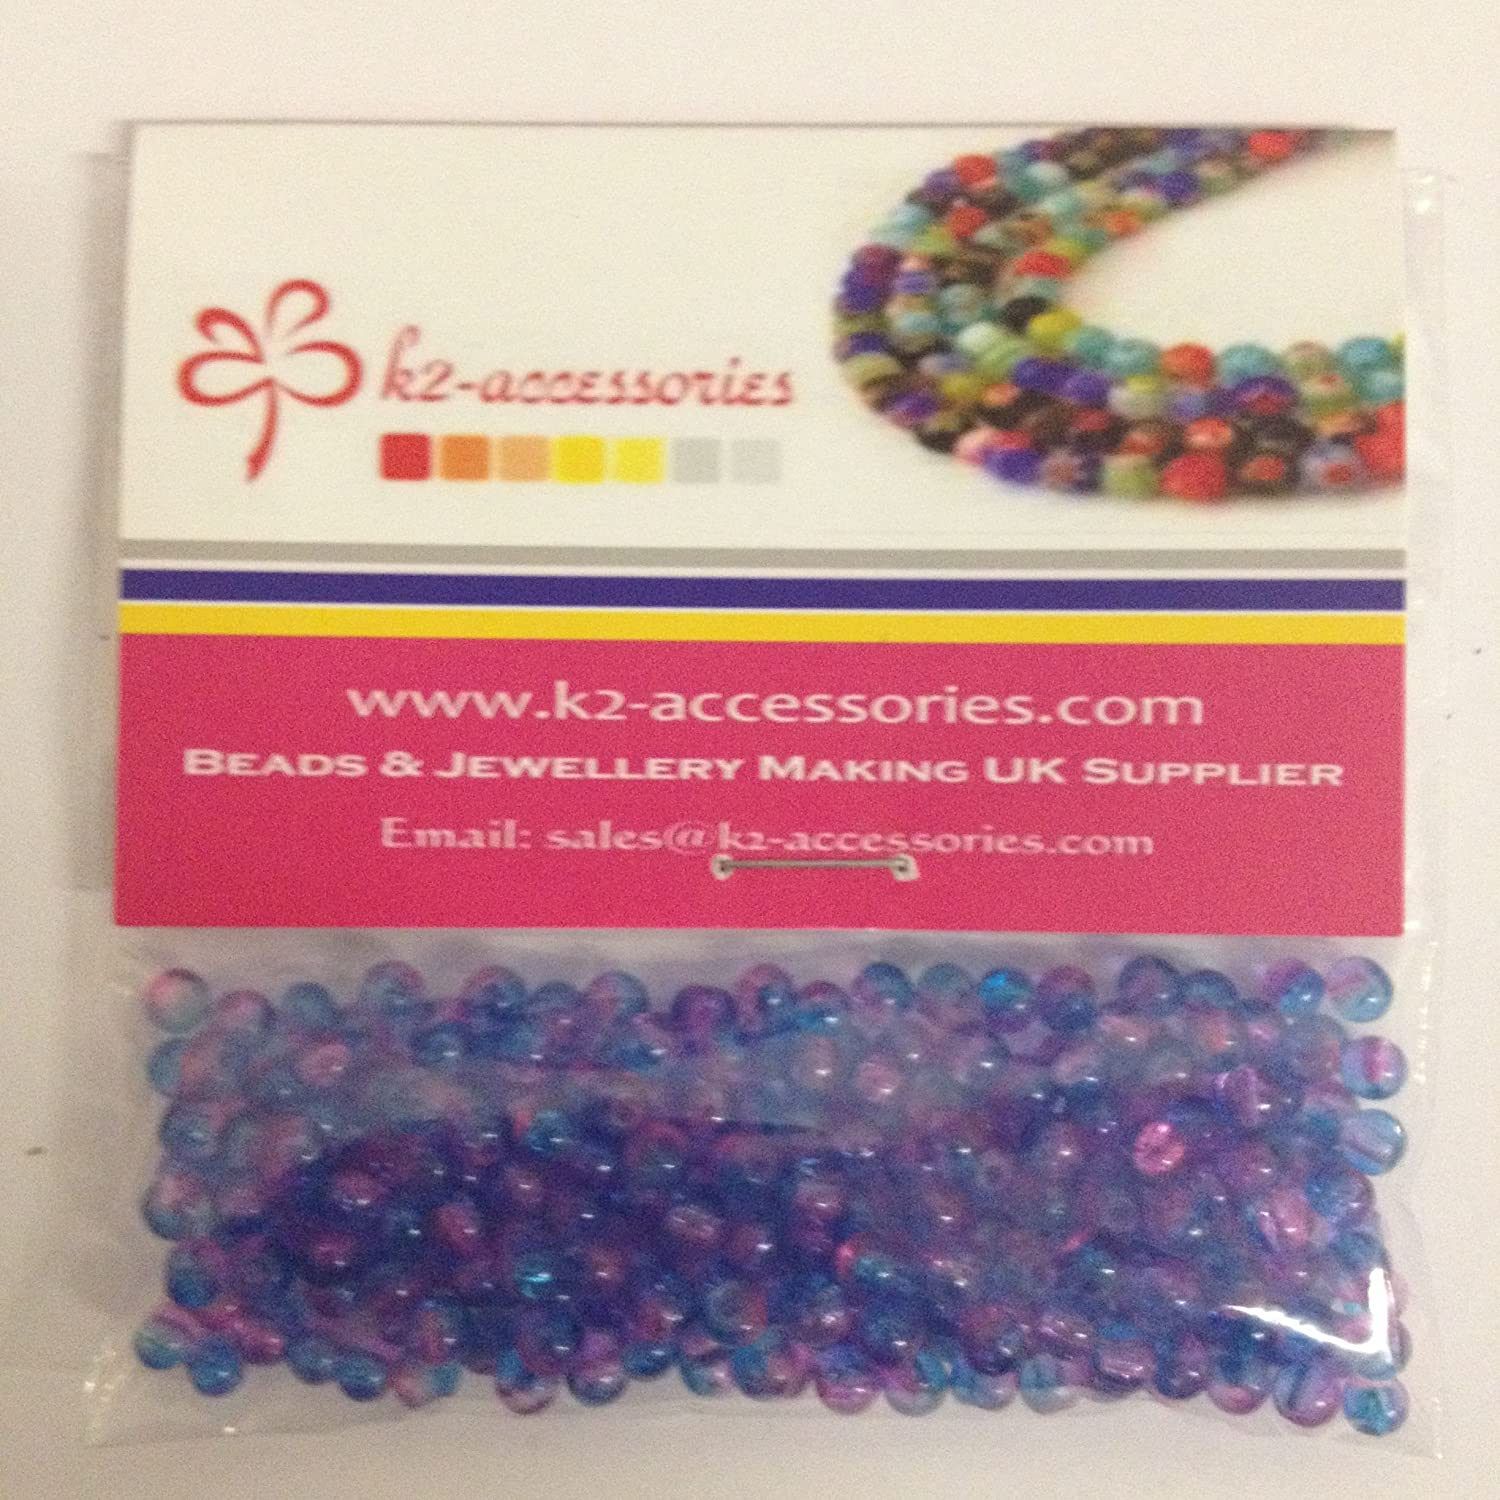 200 pieces 4mm Crackle Glass Beads - Aqua & Pink - A1420 k2-accessories